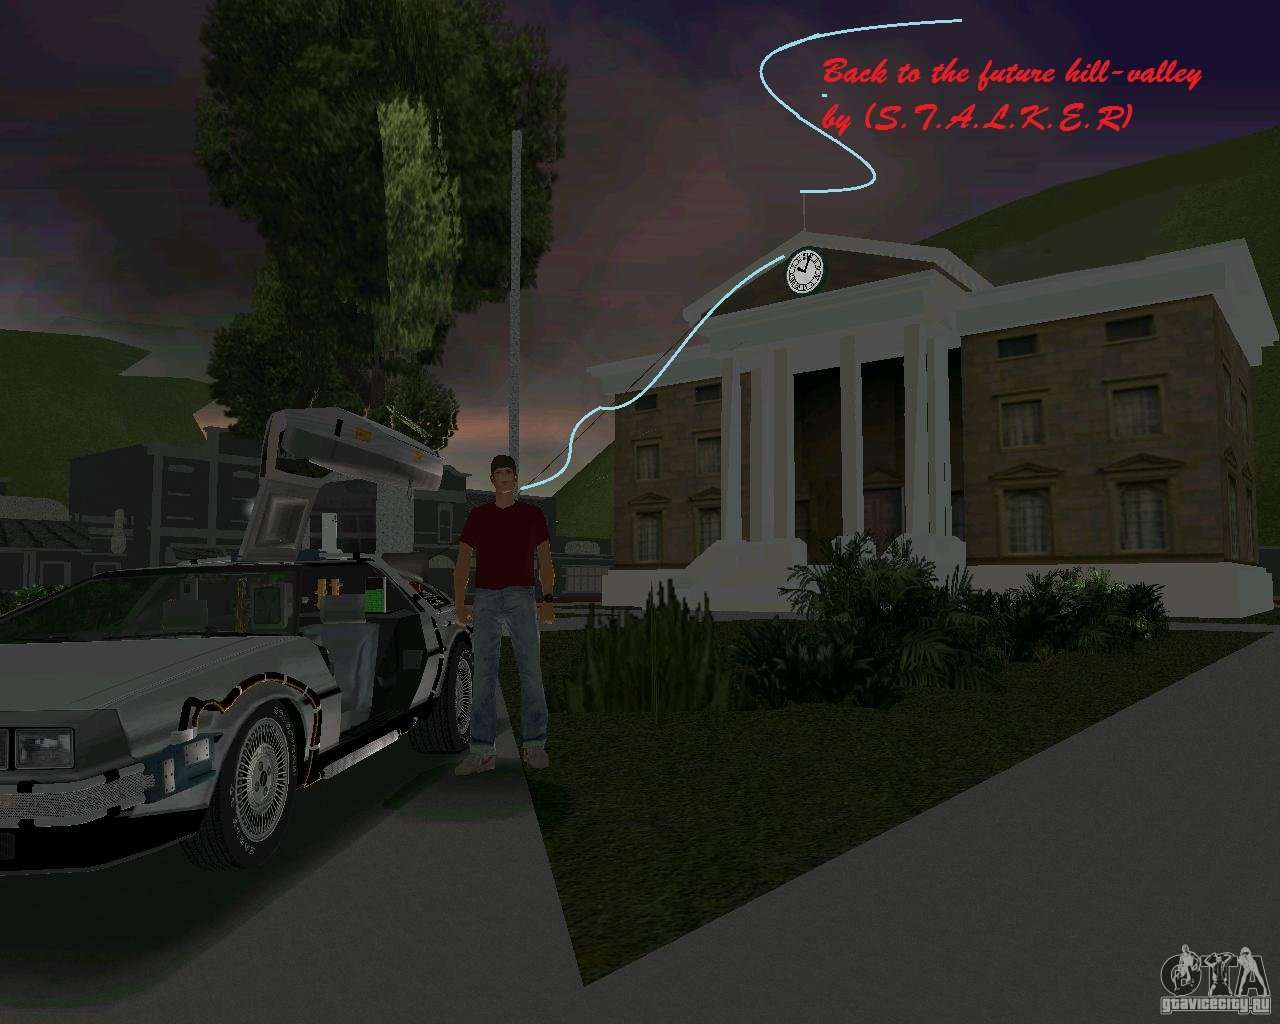 How to download gta vice city back to the future hill valley game.